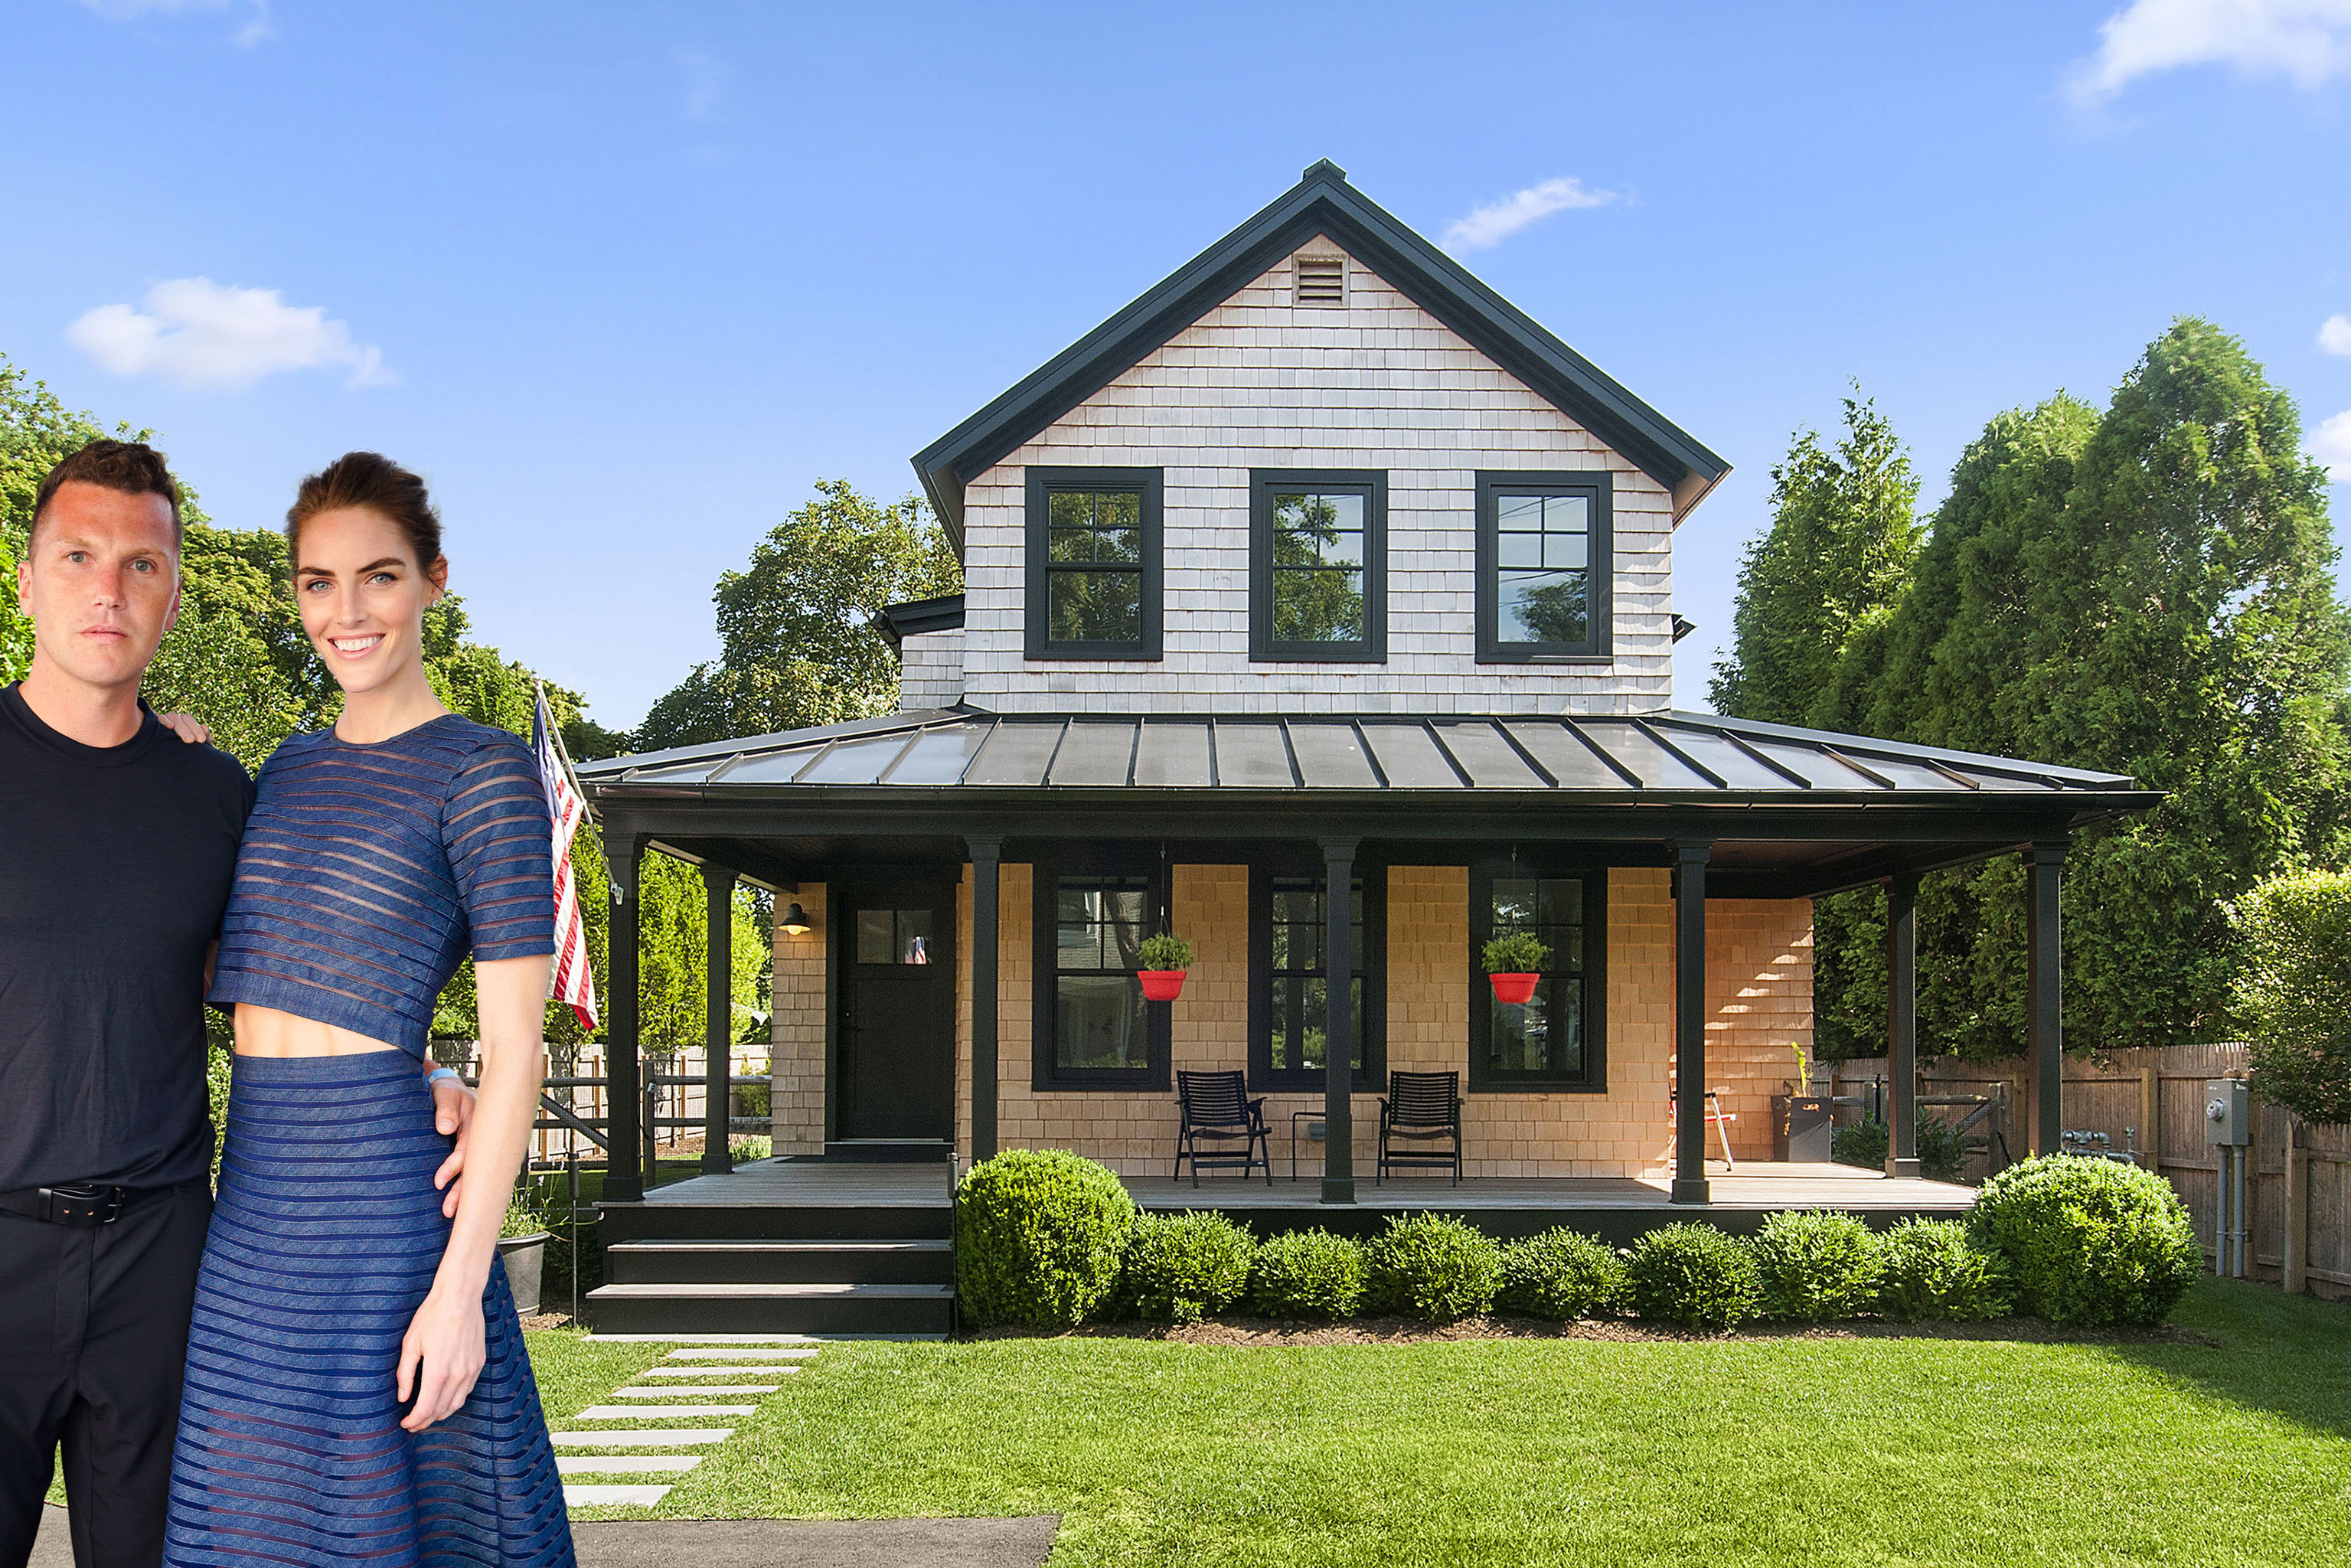 Hilary Rhoda's former bad-boy-hockey-star-husband-turned-property-developer Sean Avery has sold his Hamptons house for $1.8 millionafter two years on the market.